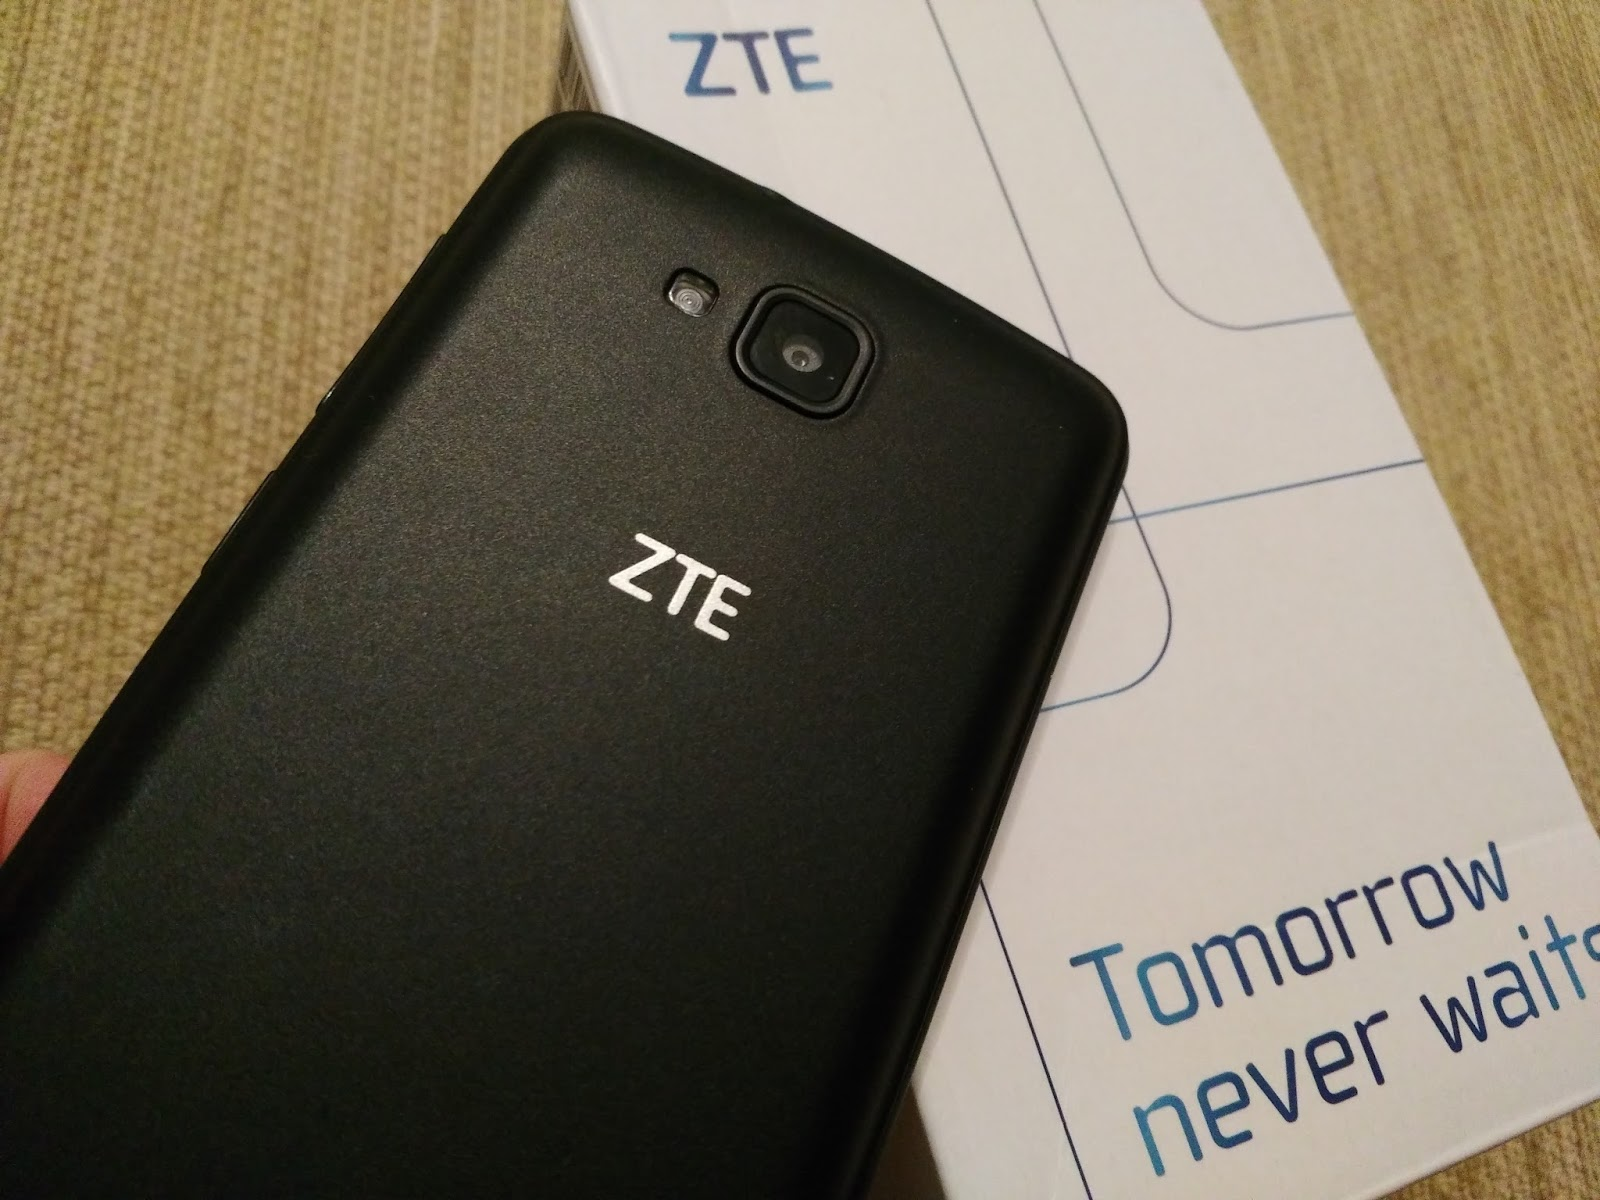 Телефон zte tomorrow never waits